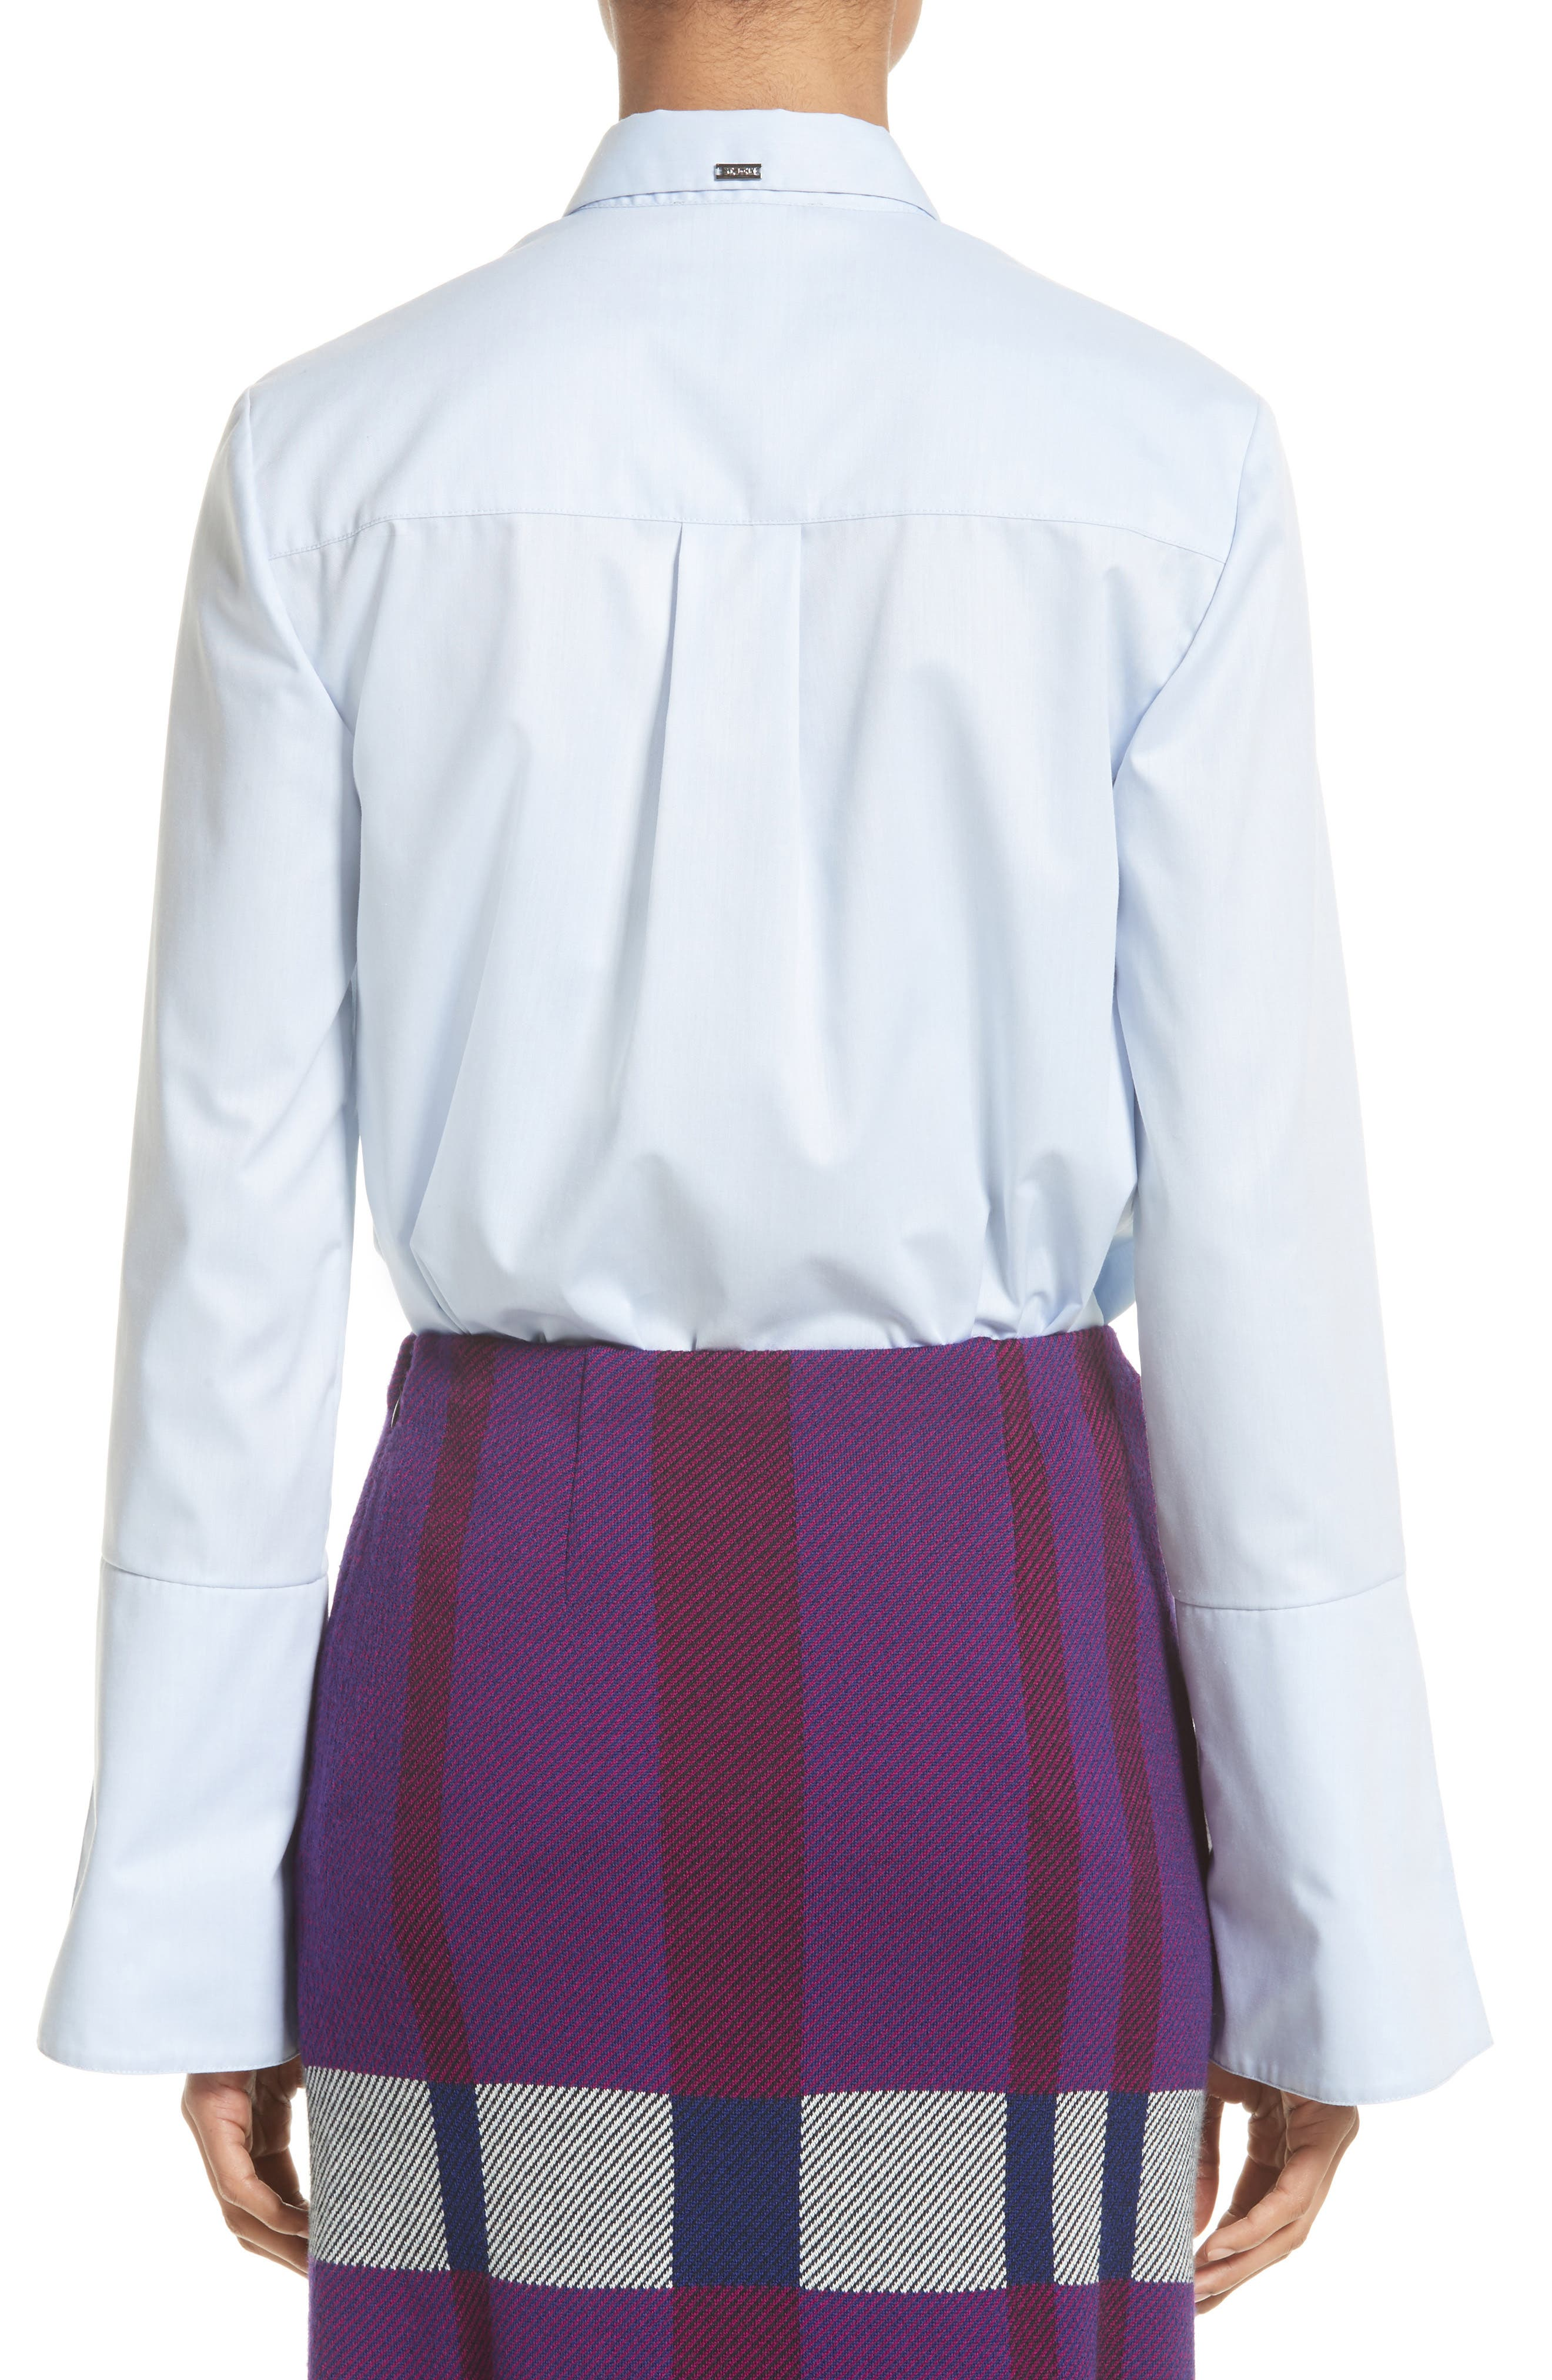 Bell Sleeve High/Low Oxford Shirt,                             Alternate thumbnail 2, color,                             420